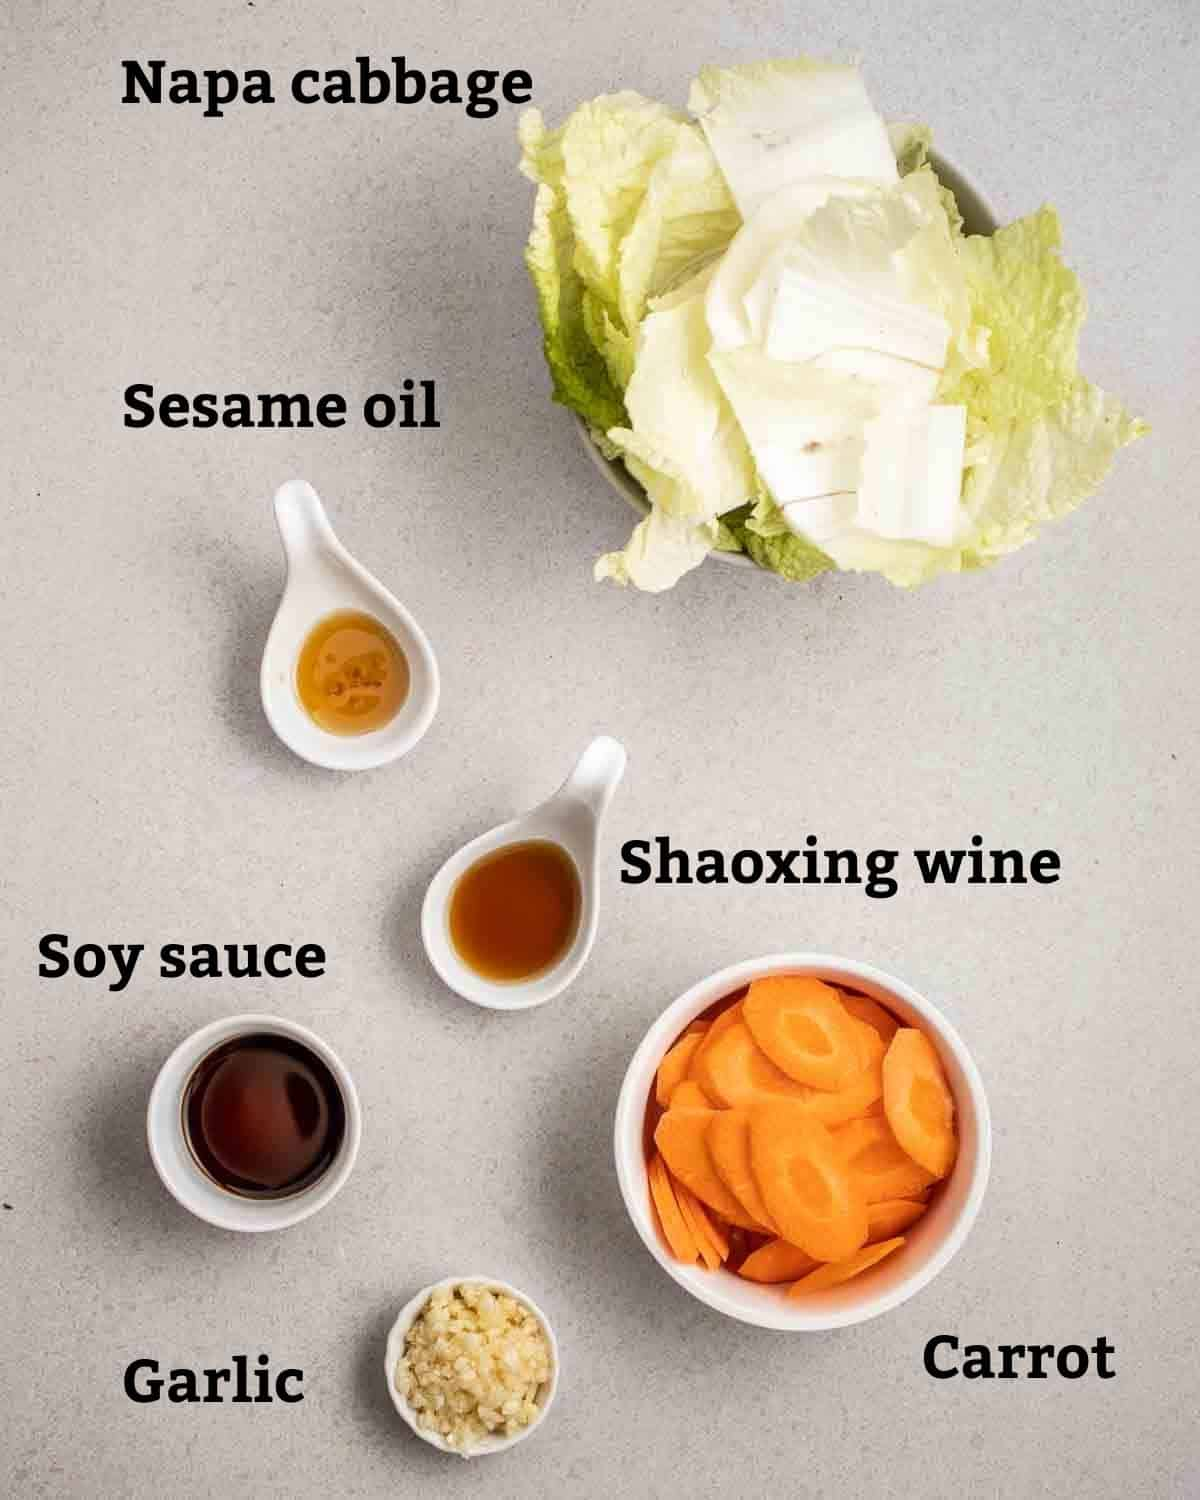 Ingredients needed like napa cabbage, carrot, garlic and seasonings in bowls on a grey background.